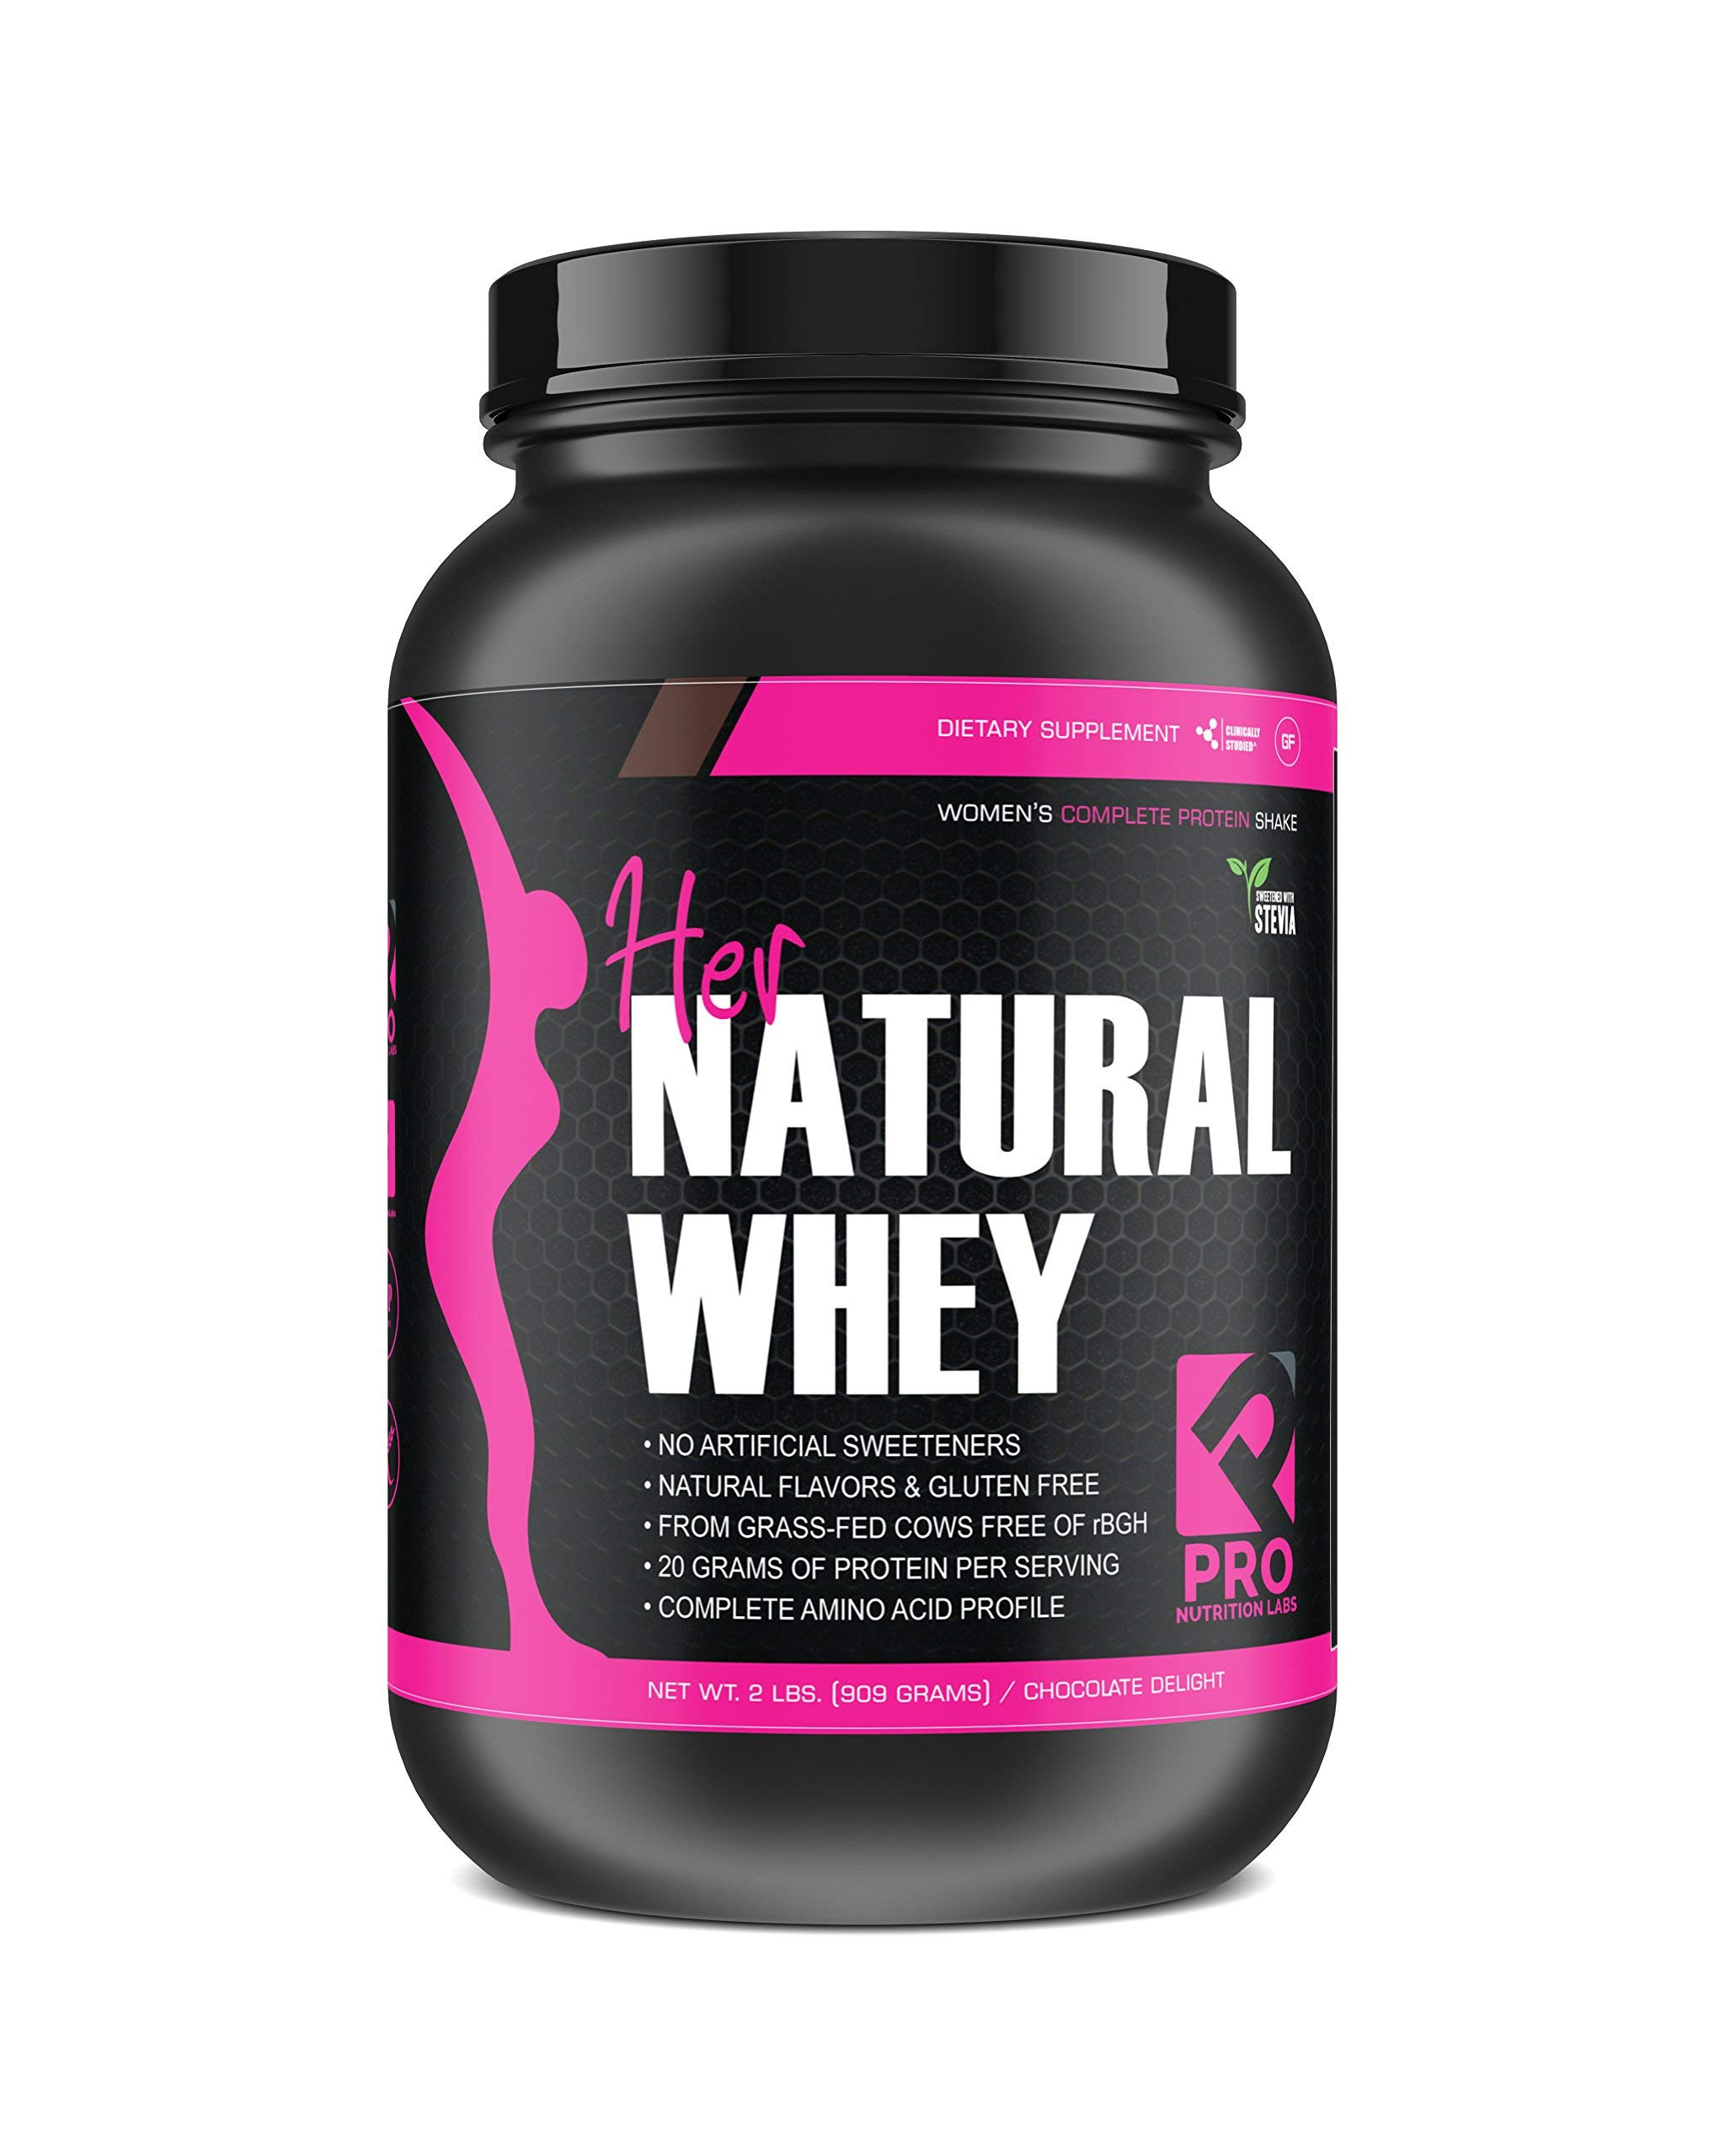 Protein Powder for Women - Her Natural Whey Protein Powder for Weight Loss & to Support Lean Muscle Mass - Low Carb - Gluten Free - rBGH Hormone Free, Sweetened w/Stevia (Chocolate Delight, 2 lb) by Pro Nutrition Labs